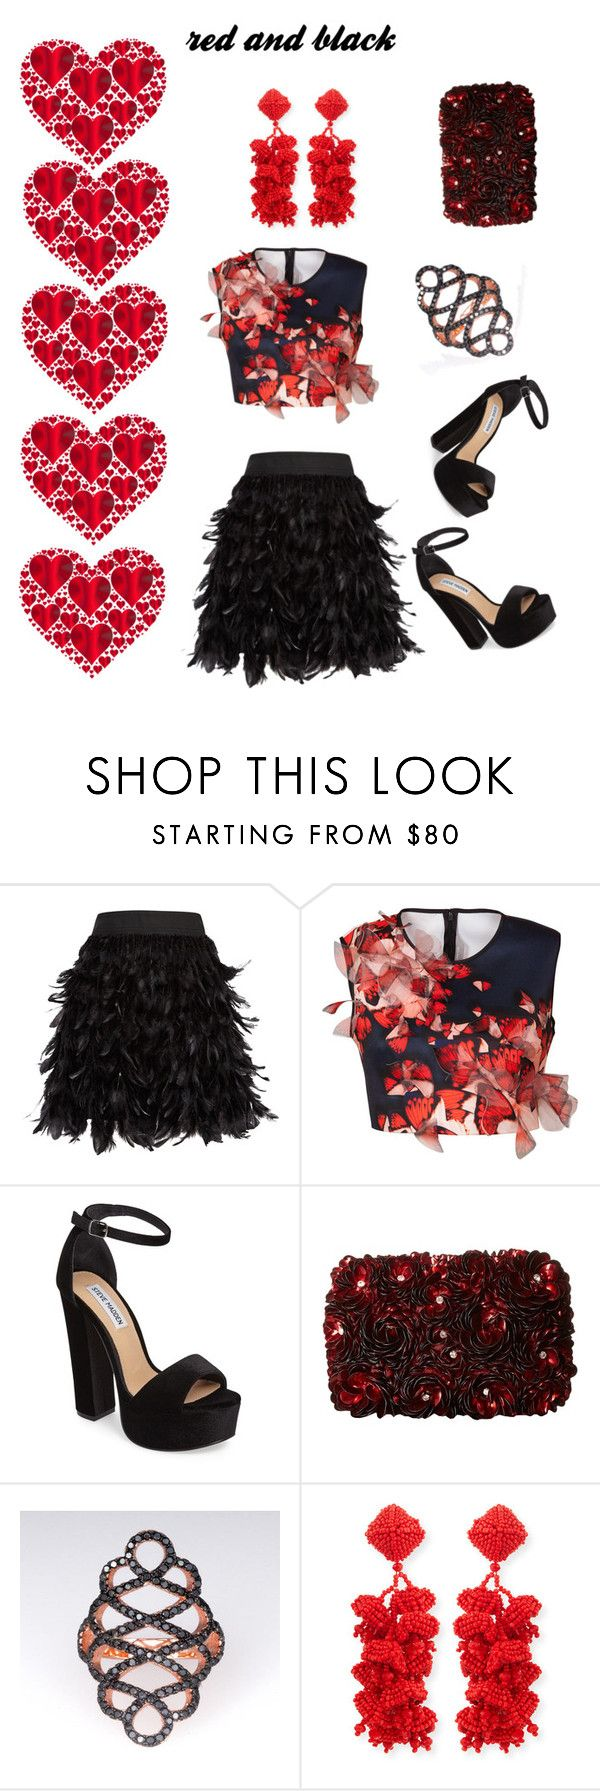 """red and black"" by tonhr ❤ liked on Polyvore featuring Alice + Olivia, Clover Canyon, Steve Madden and NOIR Sachin + Babi"